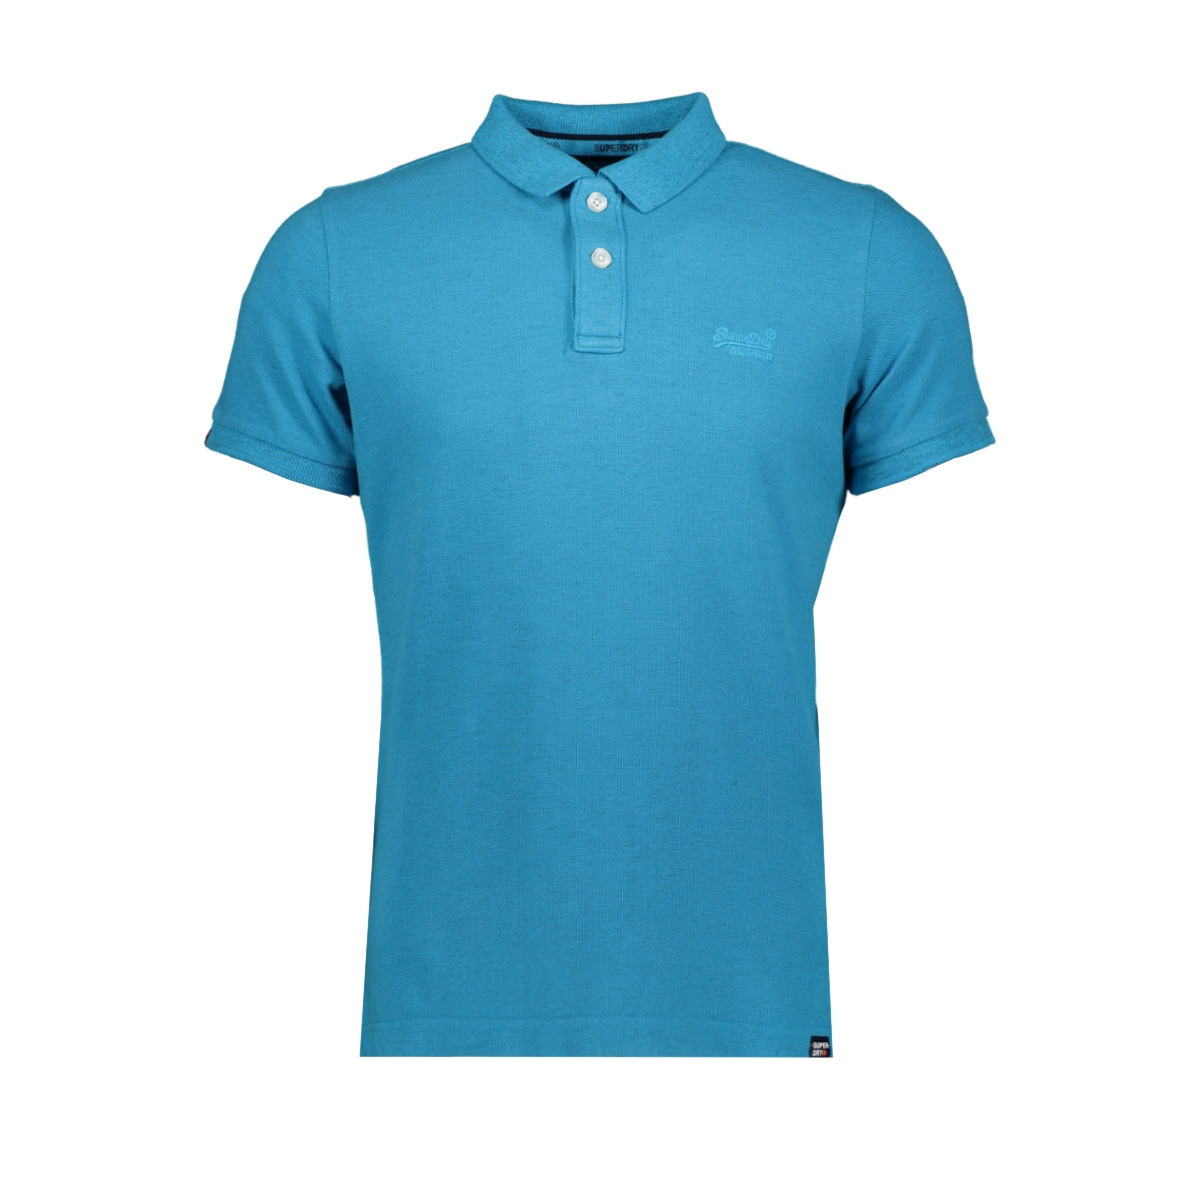 m11017rt vintage destroyed polo superdry polo beach blue marl